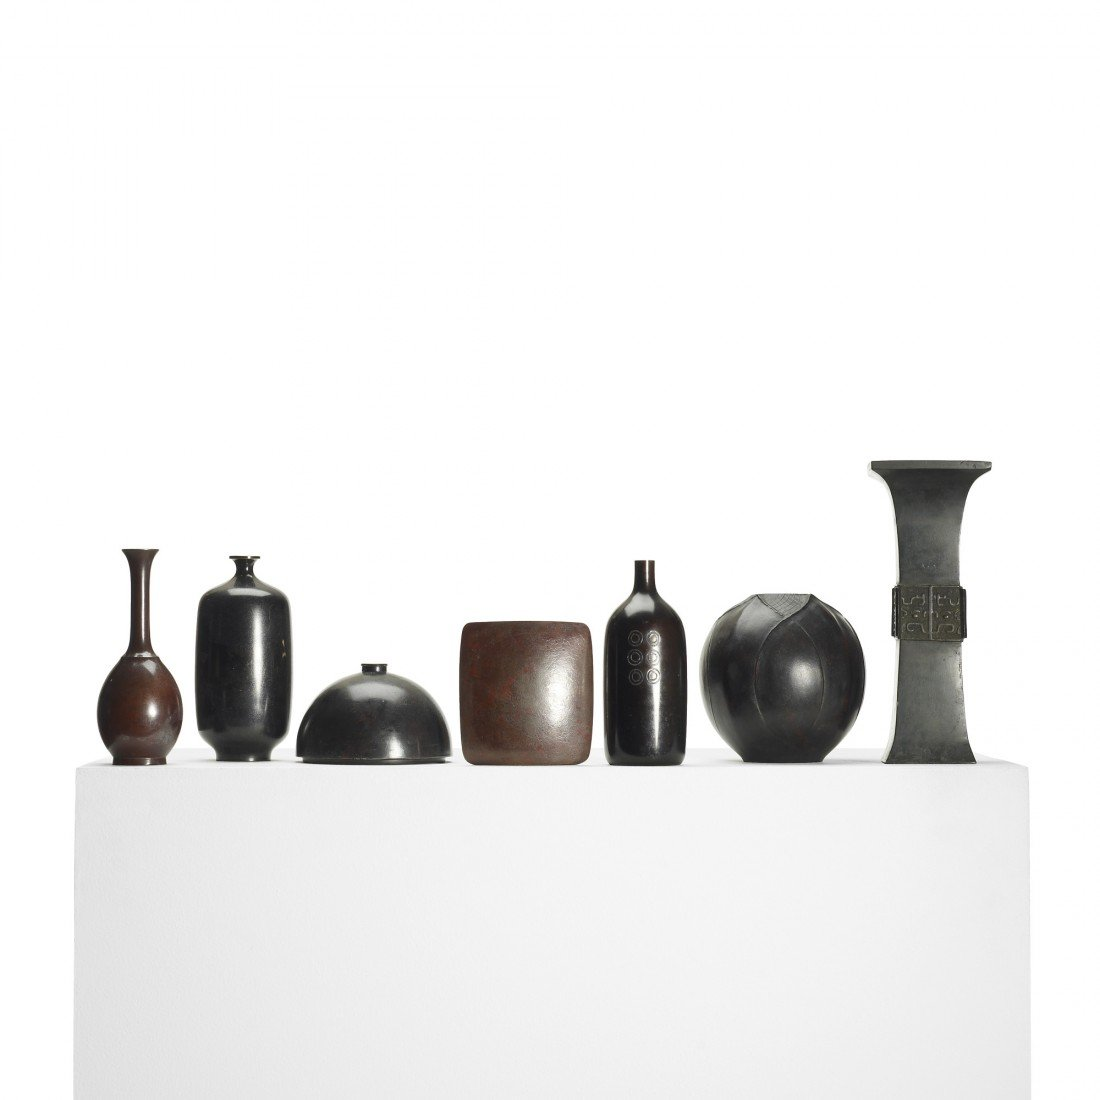 104: Modernist collection of seven vessels